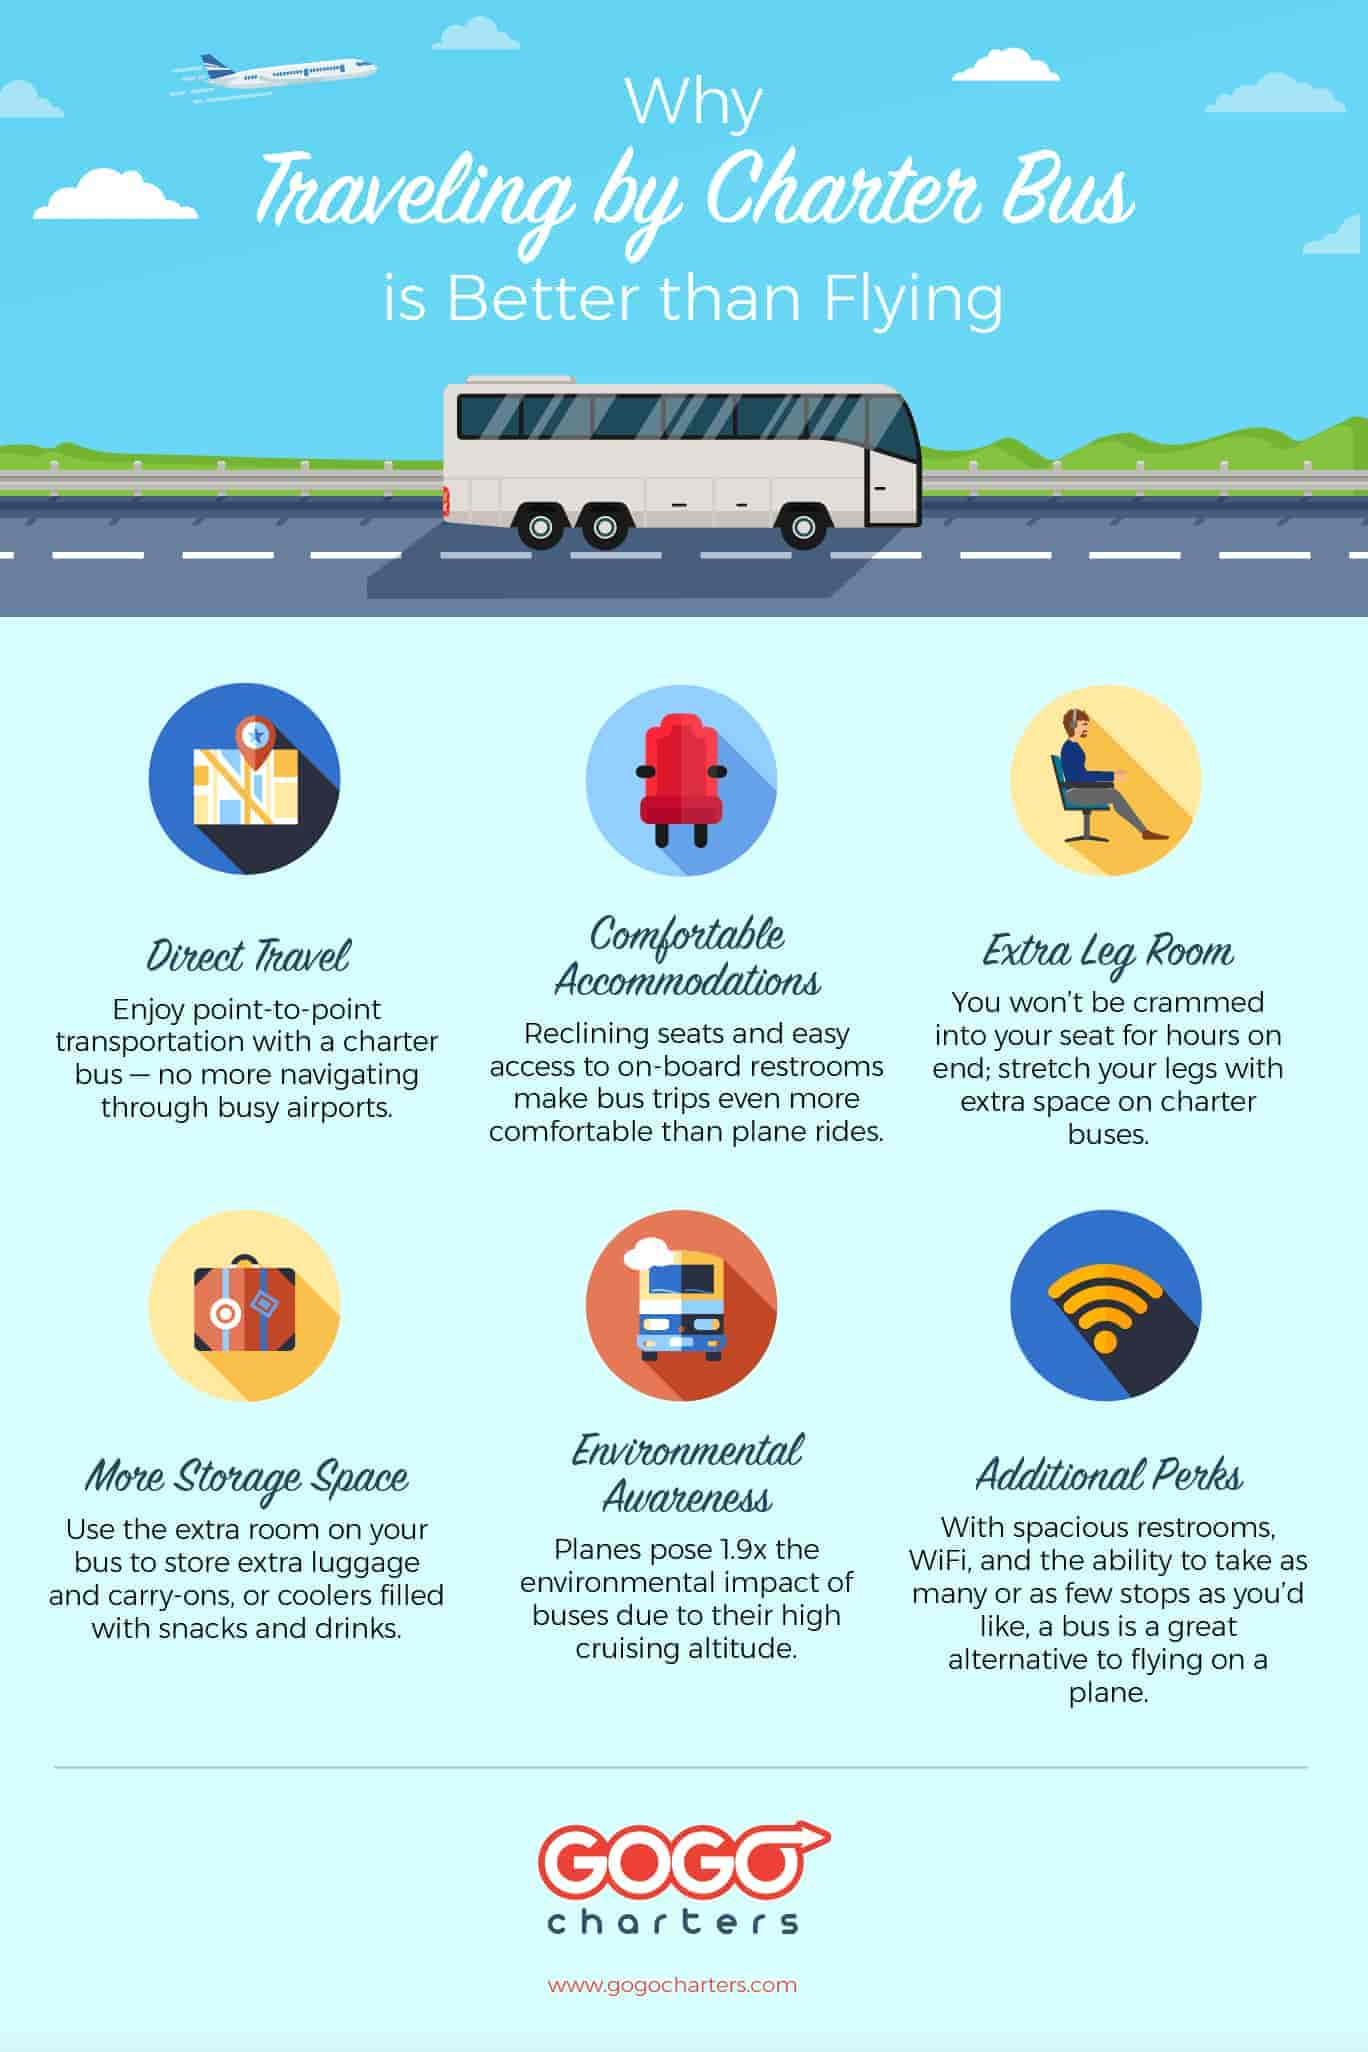 Why Traveling by Charter Bus is Better than Flying